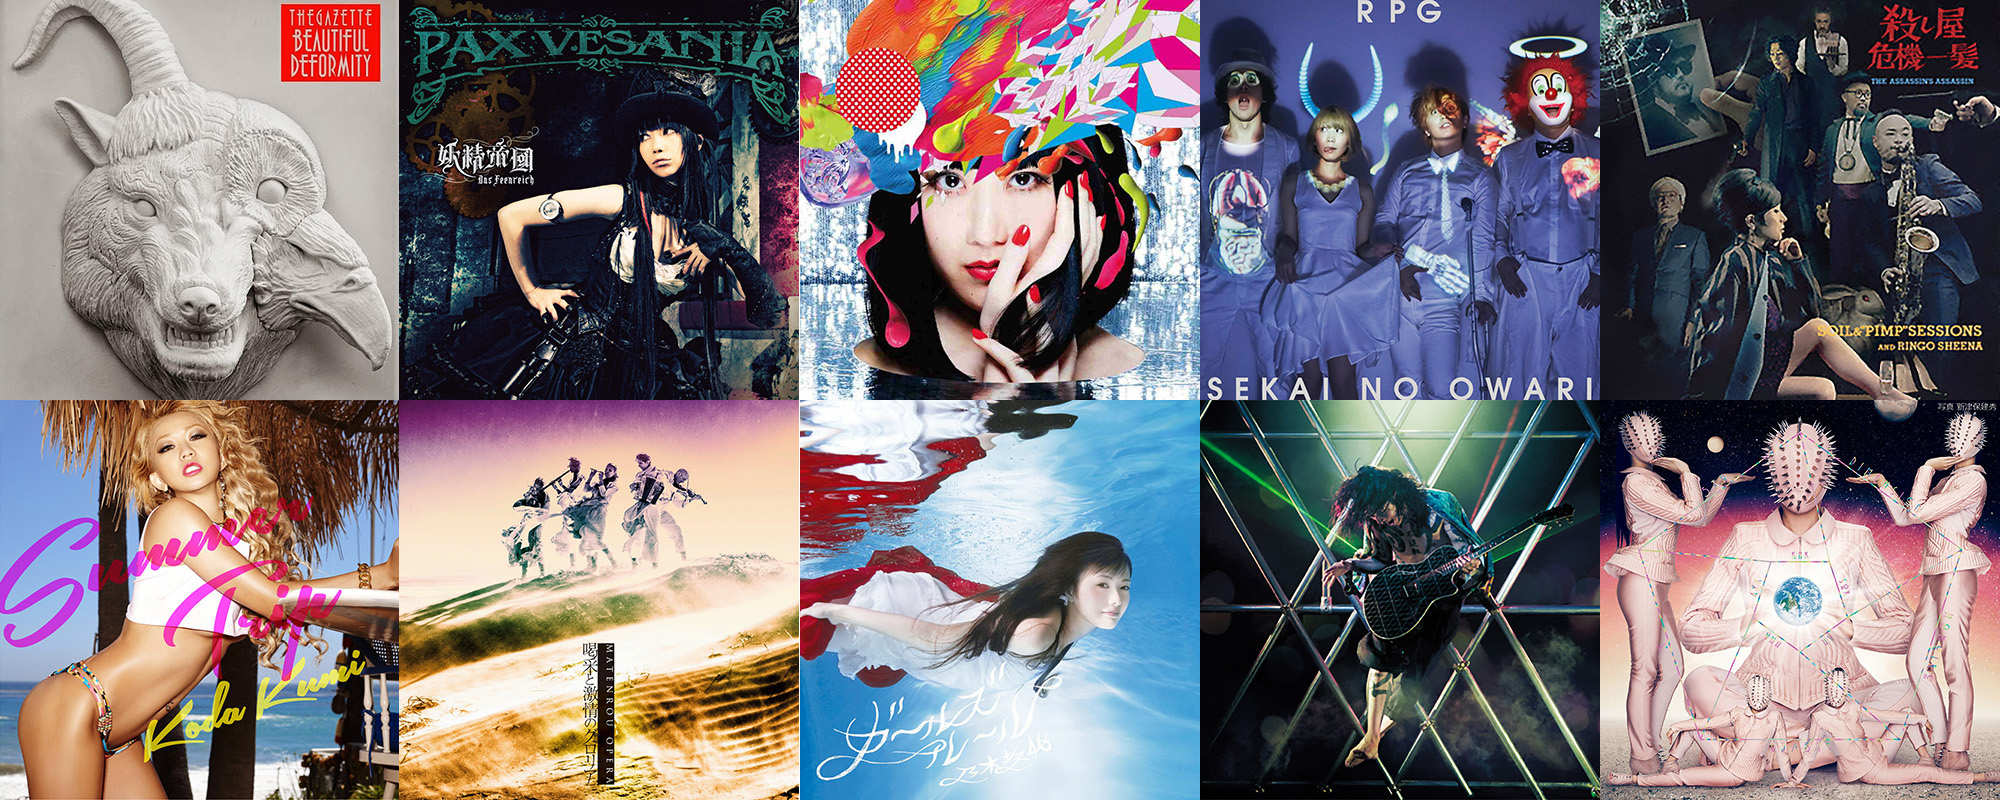 Best J-Pop J-Rock covers 2013